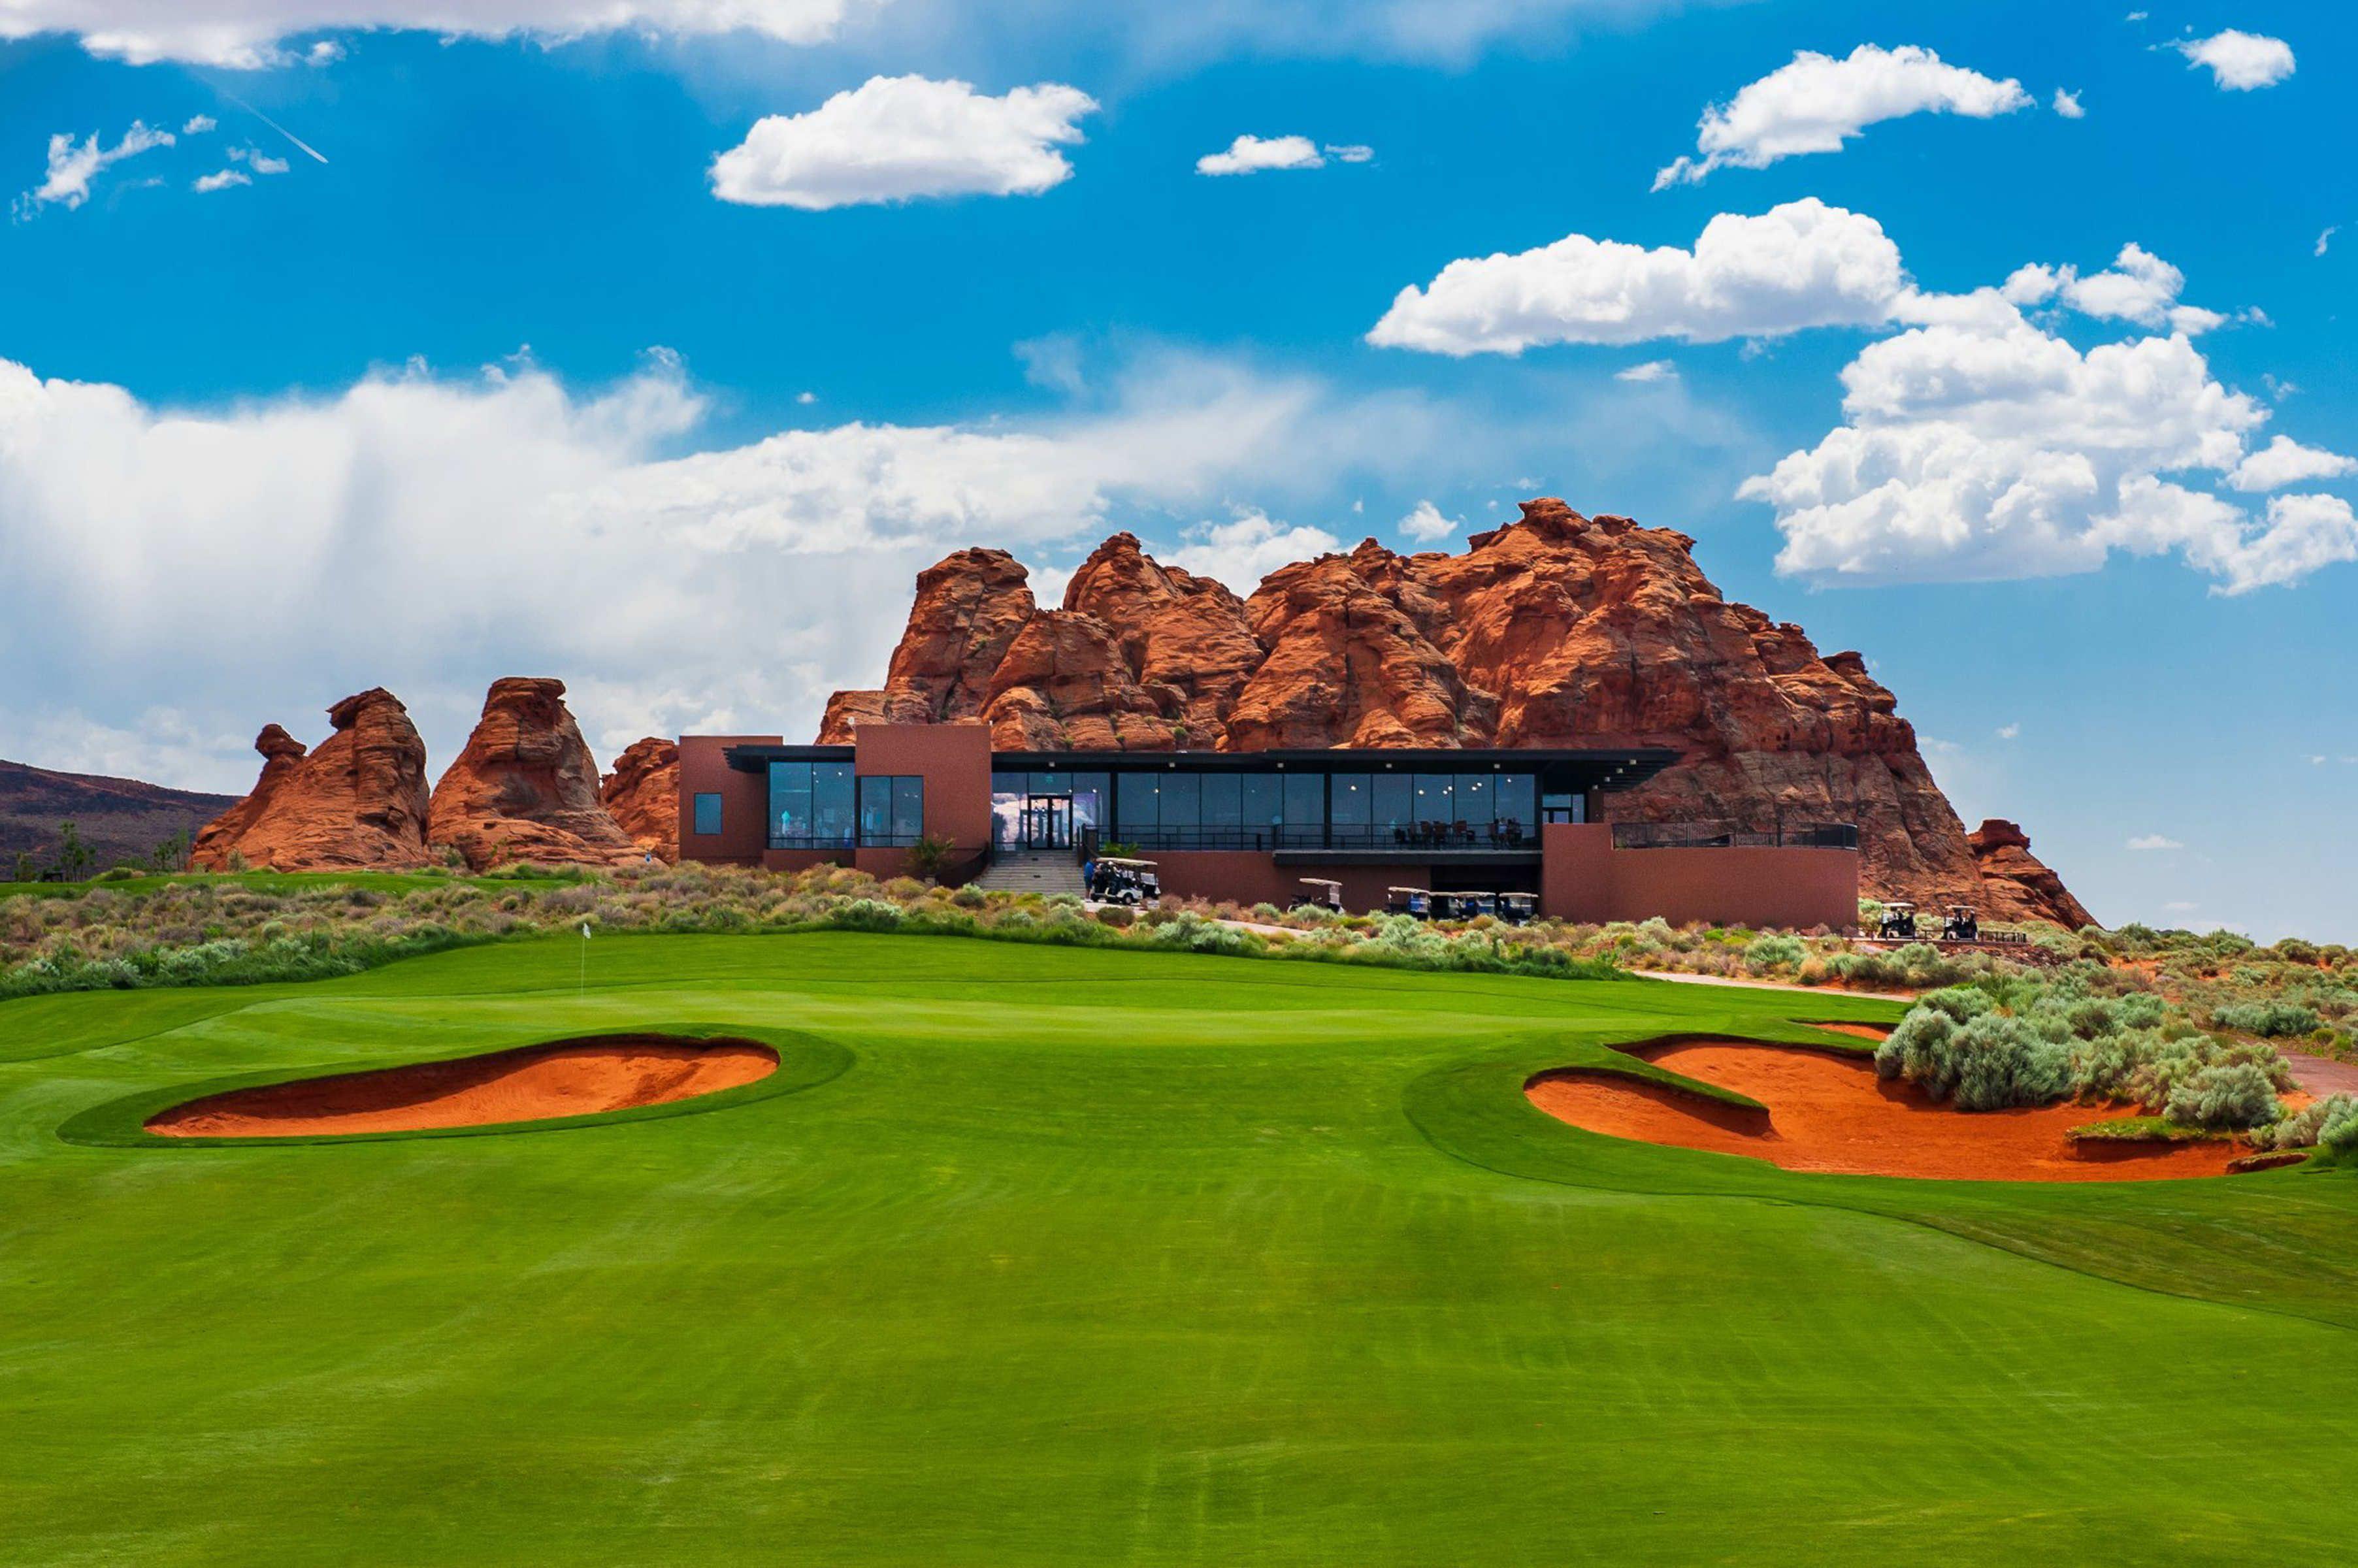 Southern Utah S Red Rock Golf Trail Golf Courses Golf Tips Golf Vacations